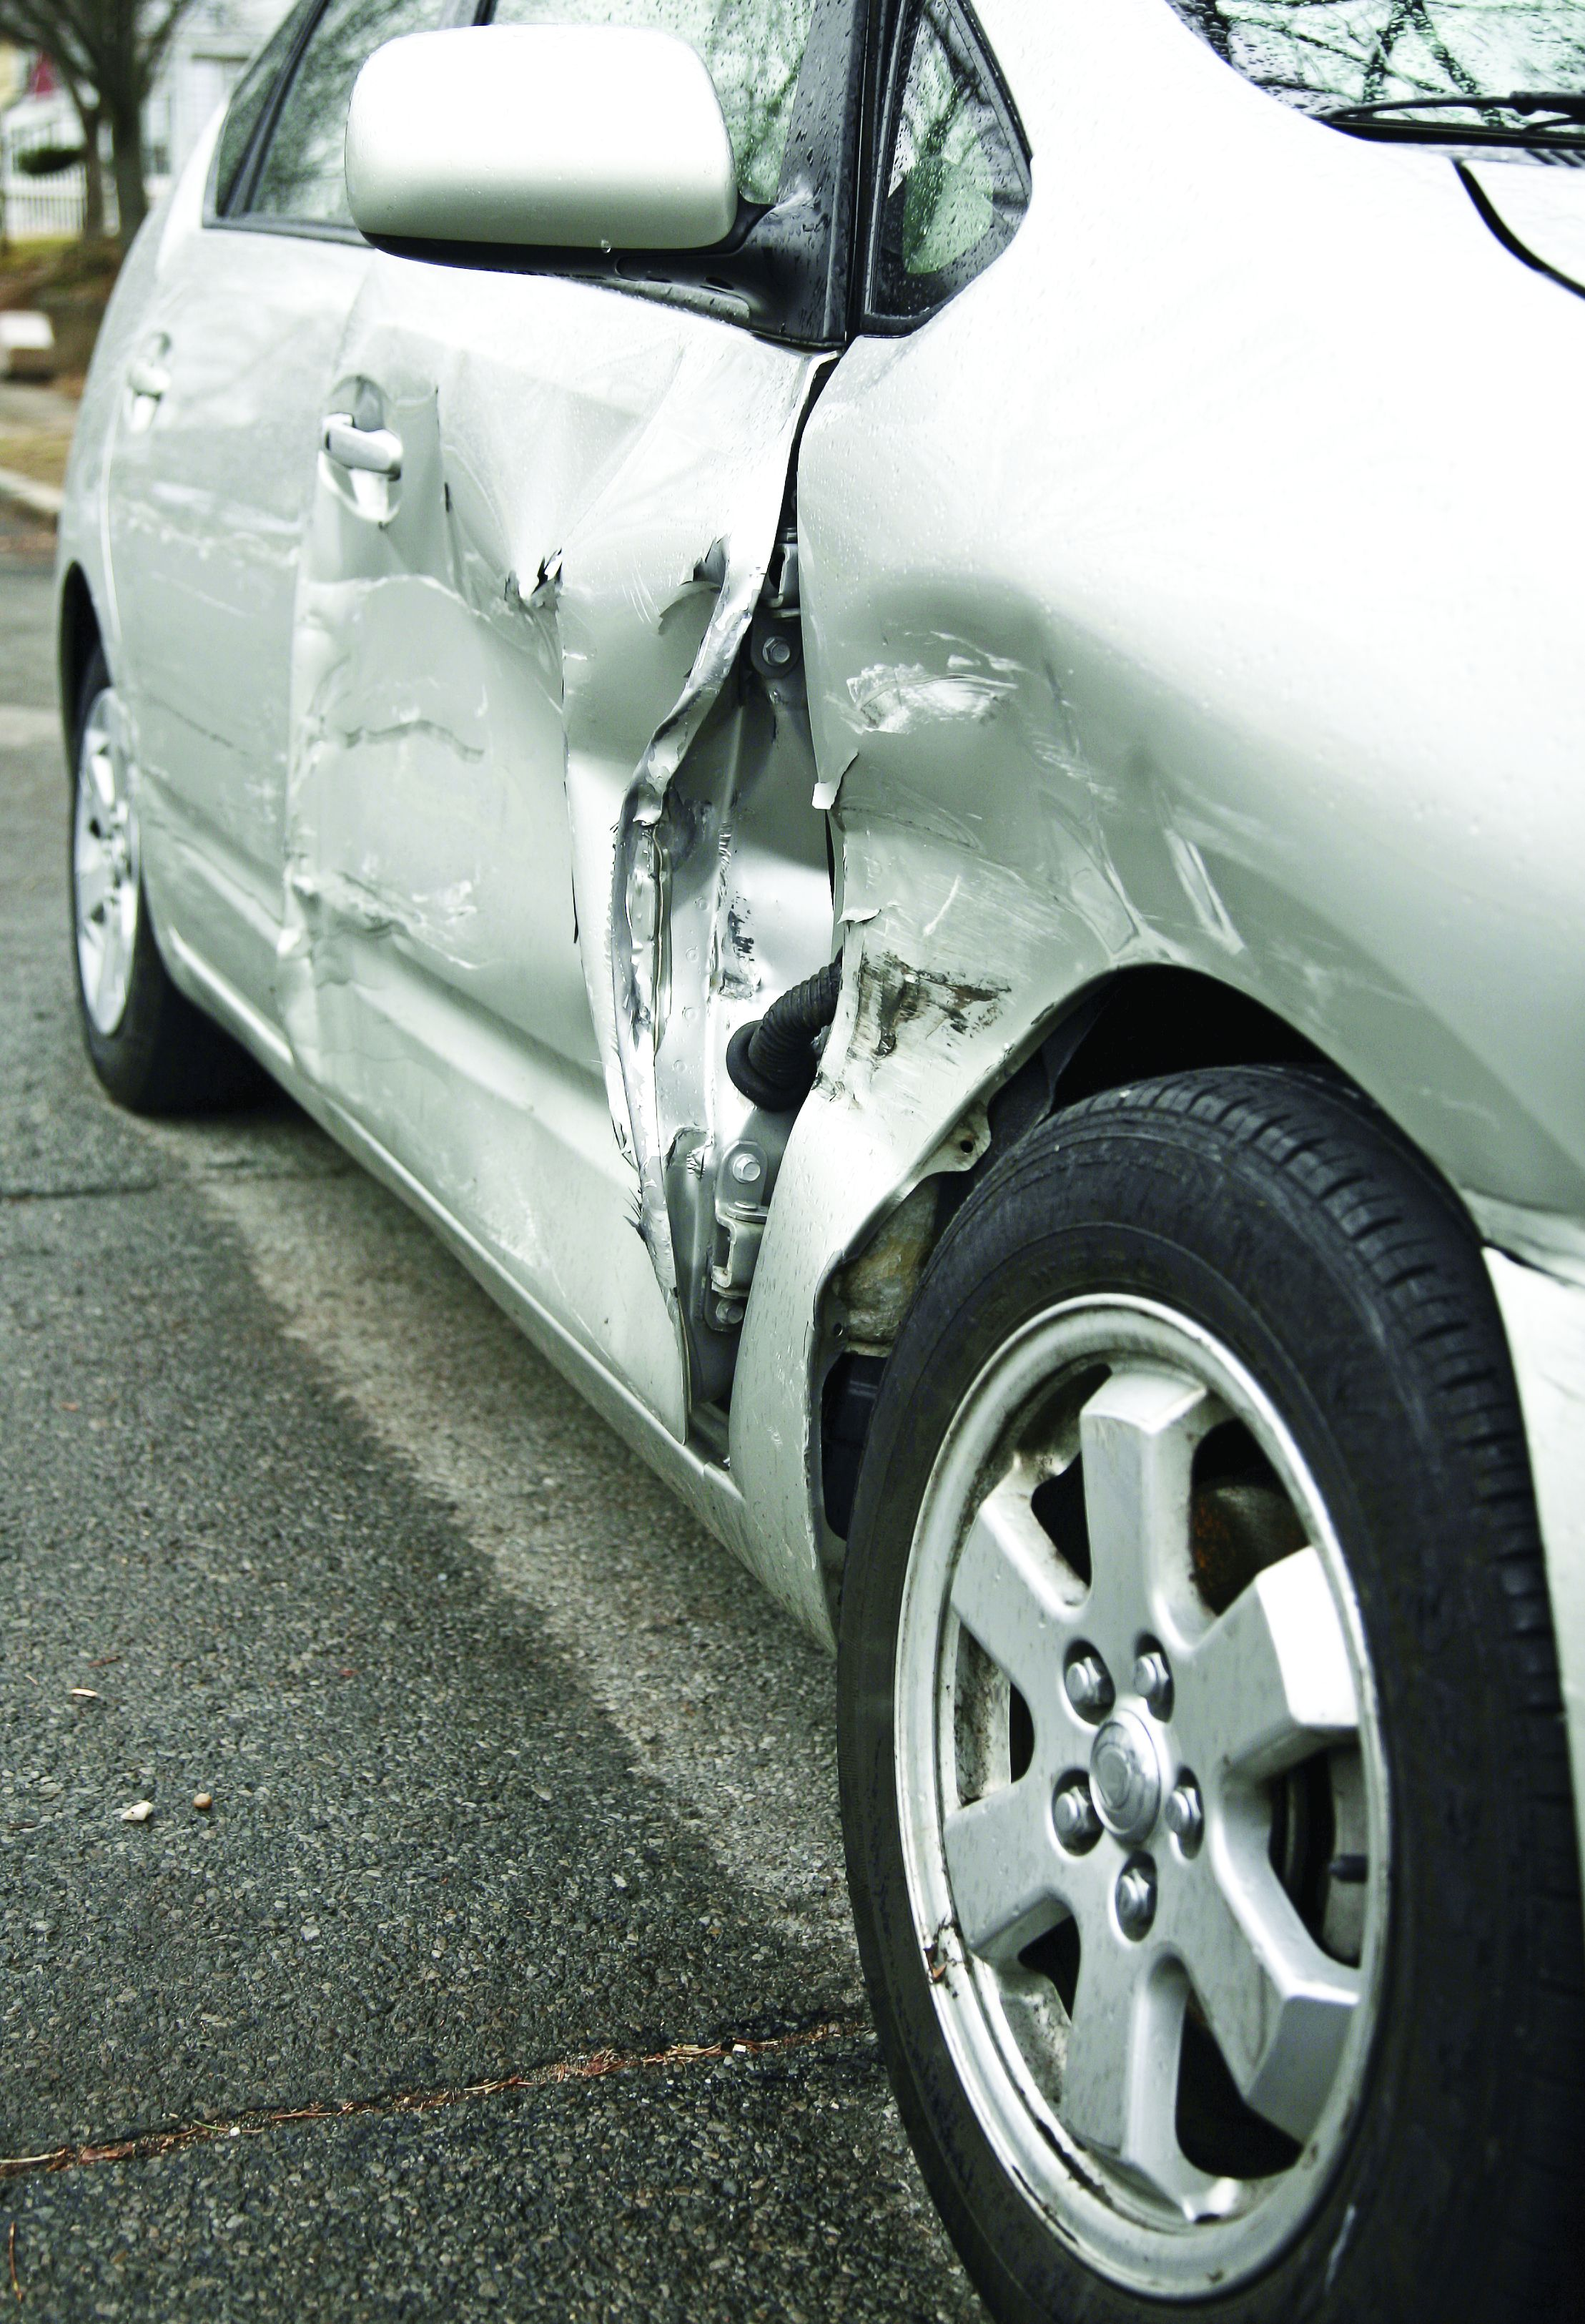 Should Damaged Vehicles Be Repaired or Replaced?